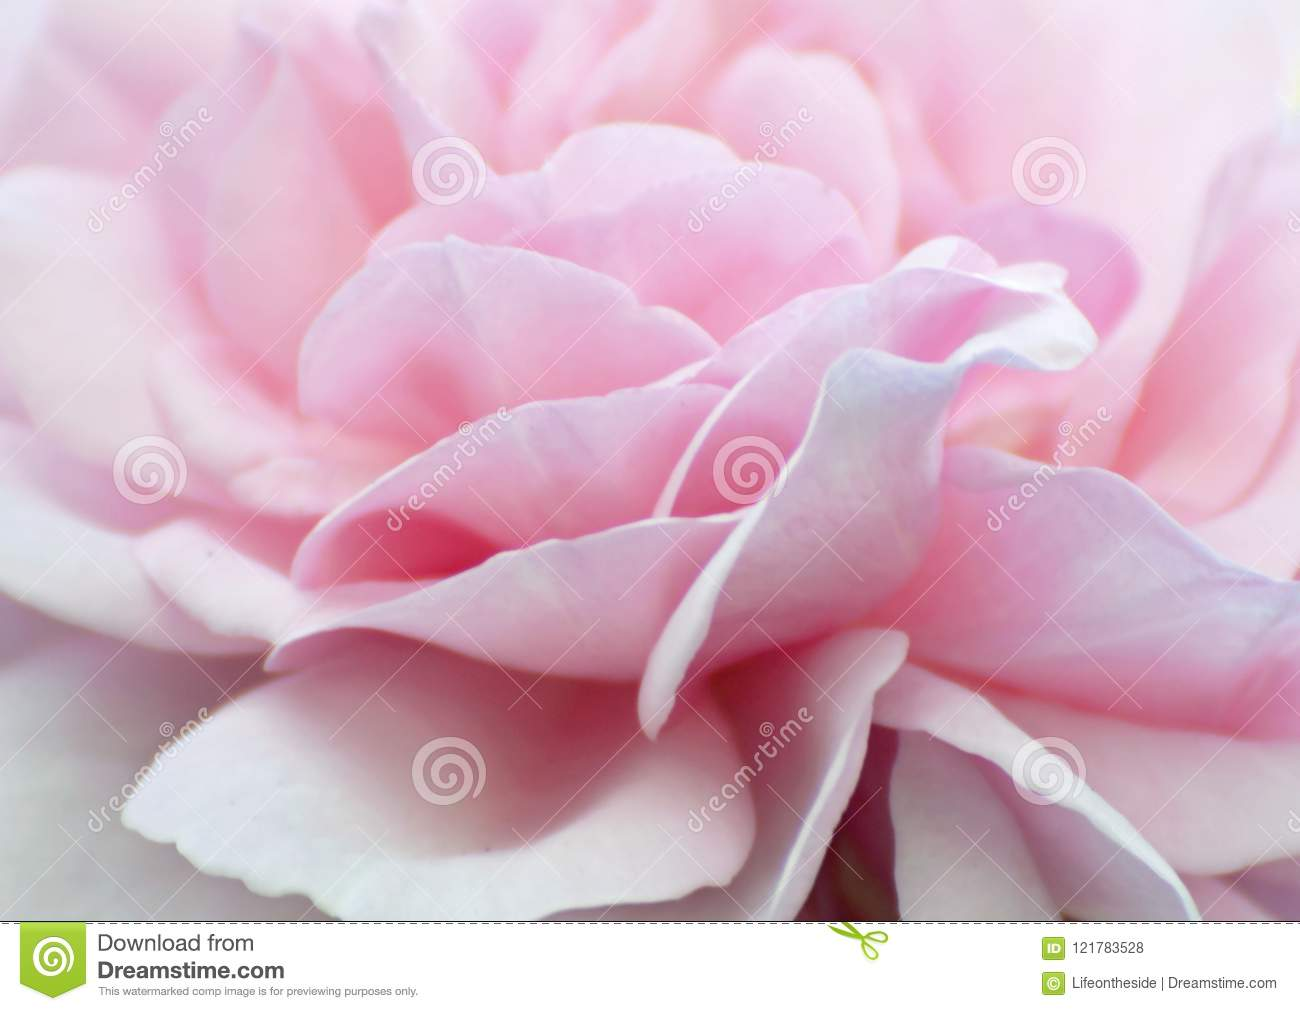 Abstract background soft pale baby pink rose petals wallpaper